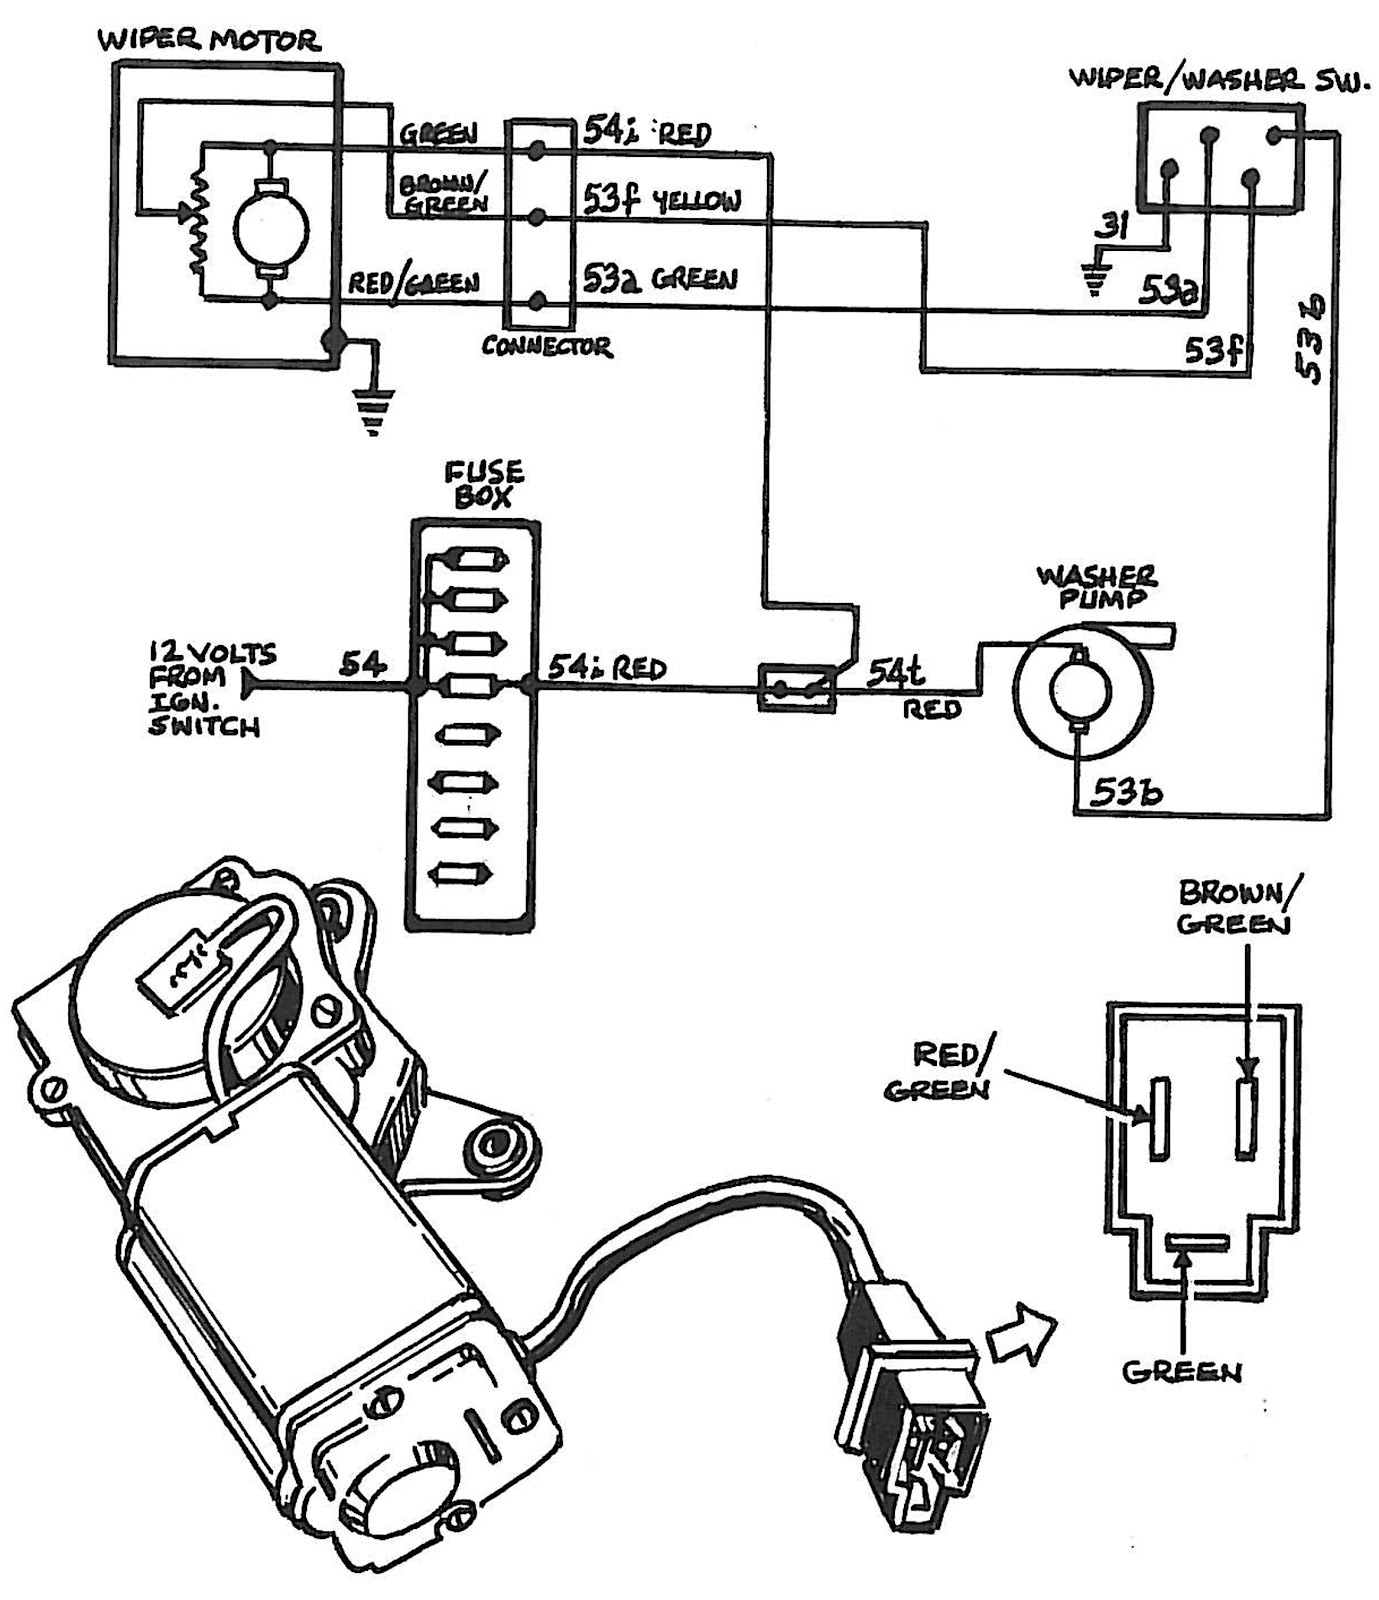 HP PartList further Schematics h as well 1427913 Brake Line Replacement in addition Index also 1979 C10 Wiring Diagram. on 1972 jeep pickup truck